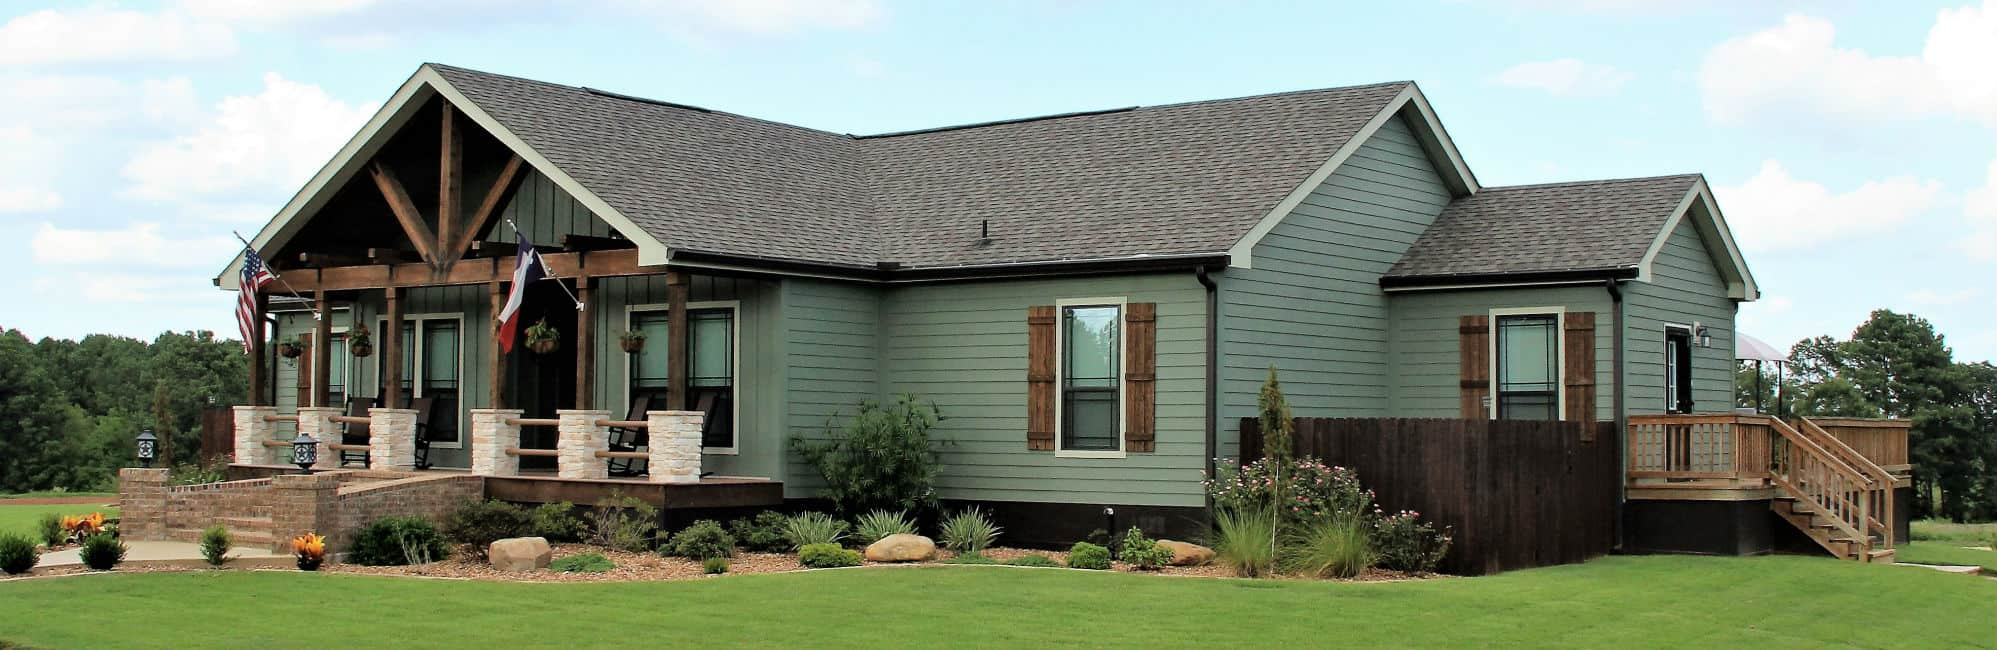 Pratt Modular Homes Modular Homes Texas And Tiny Houses Texas